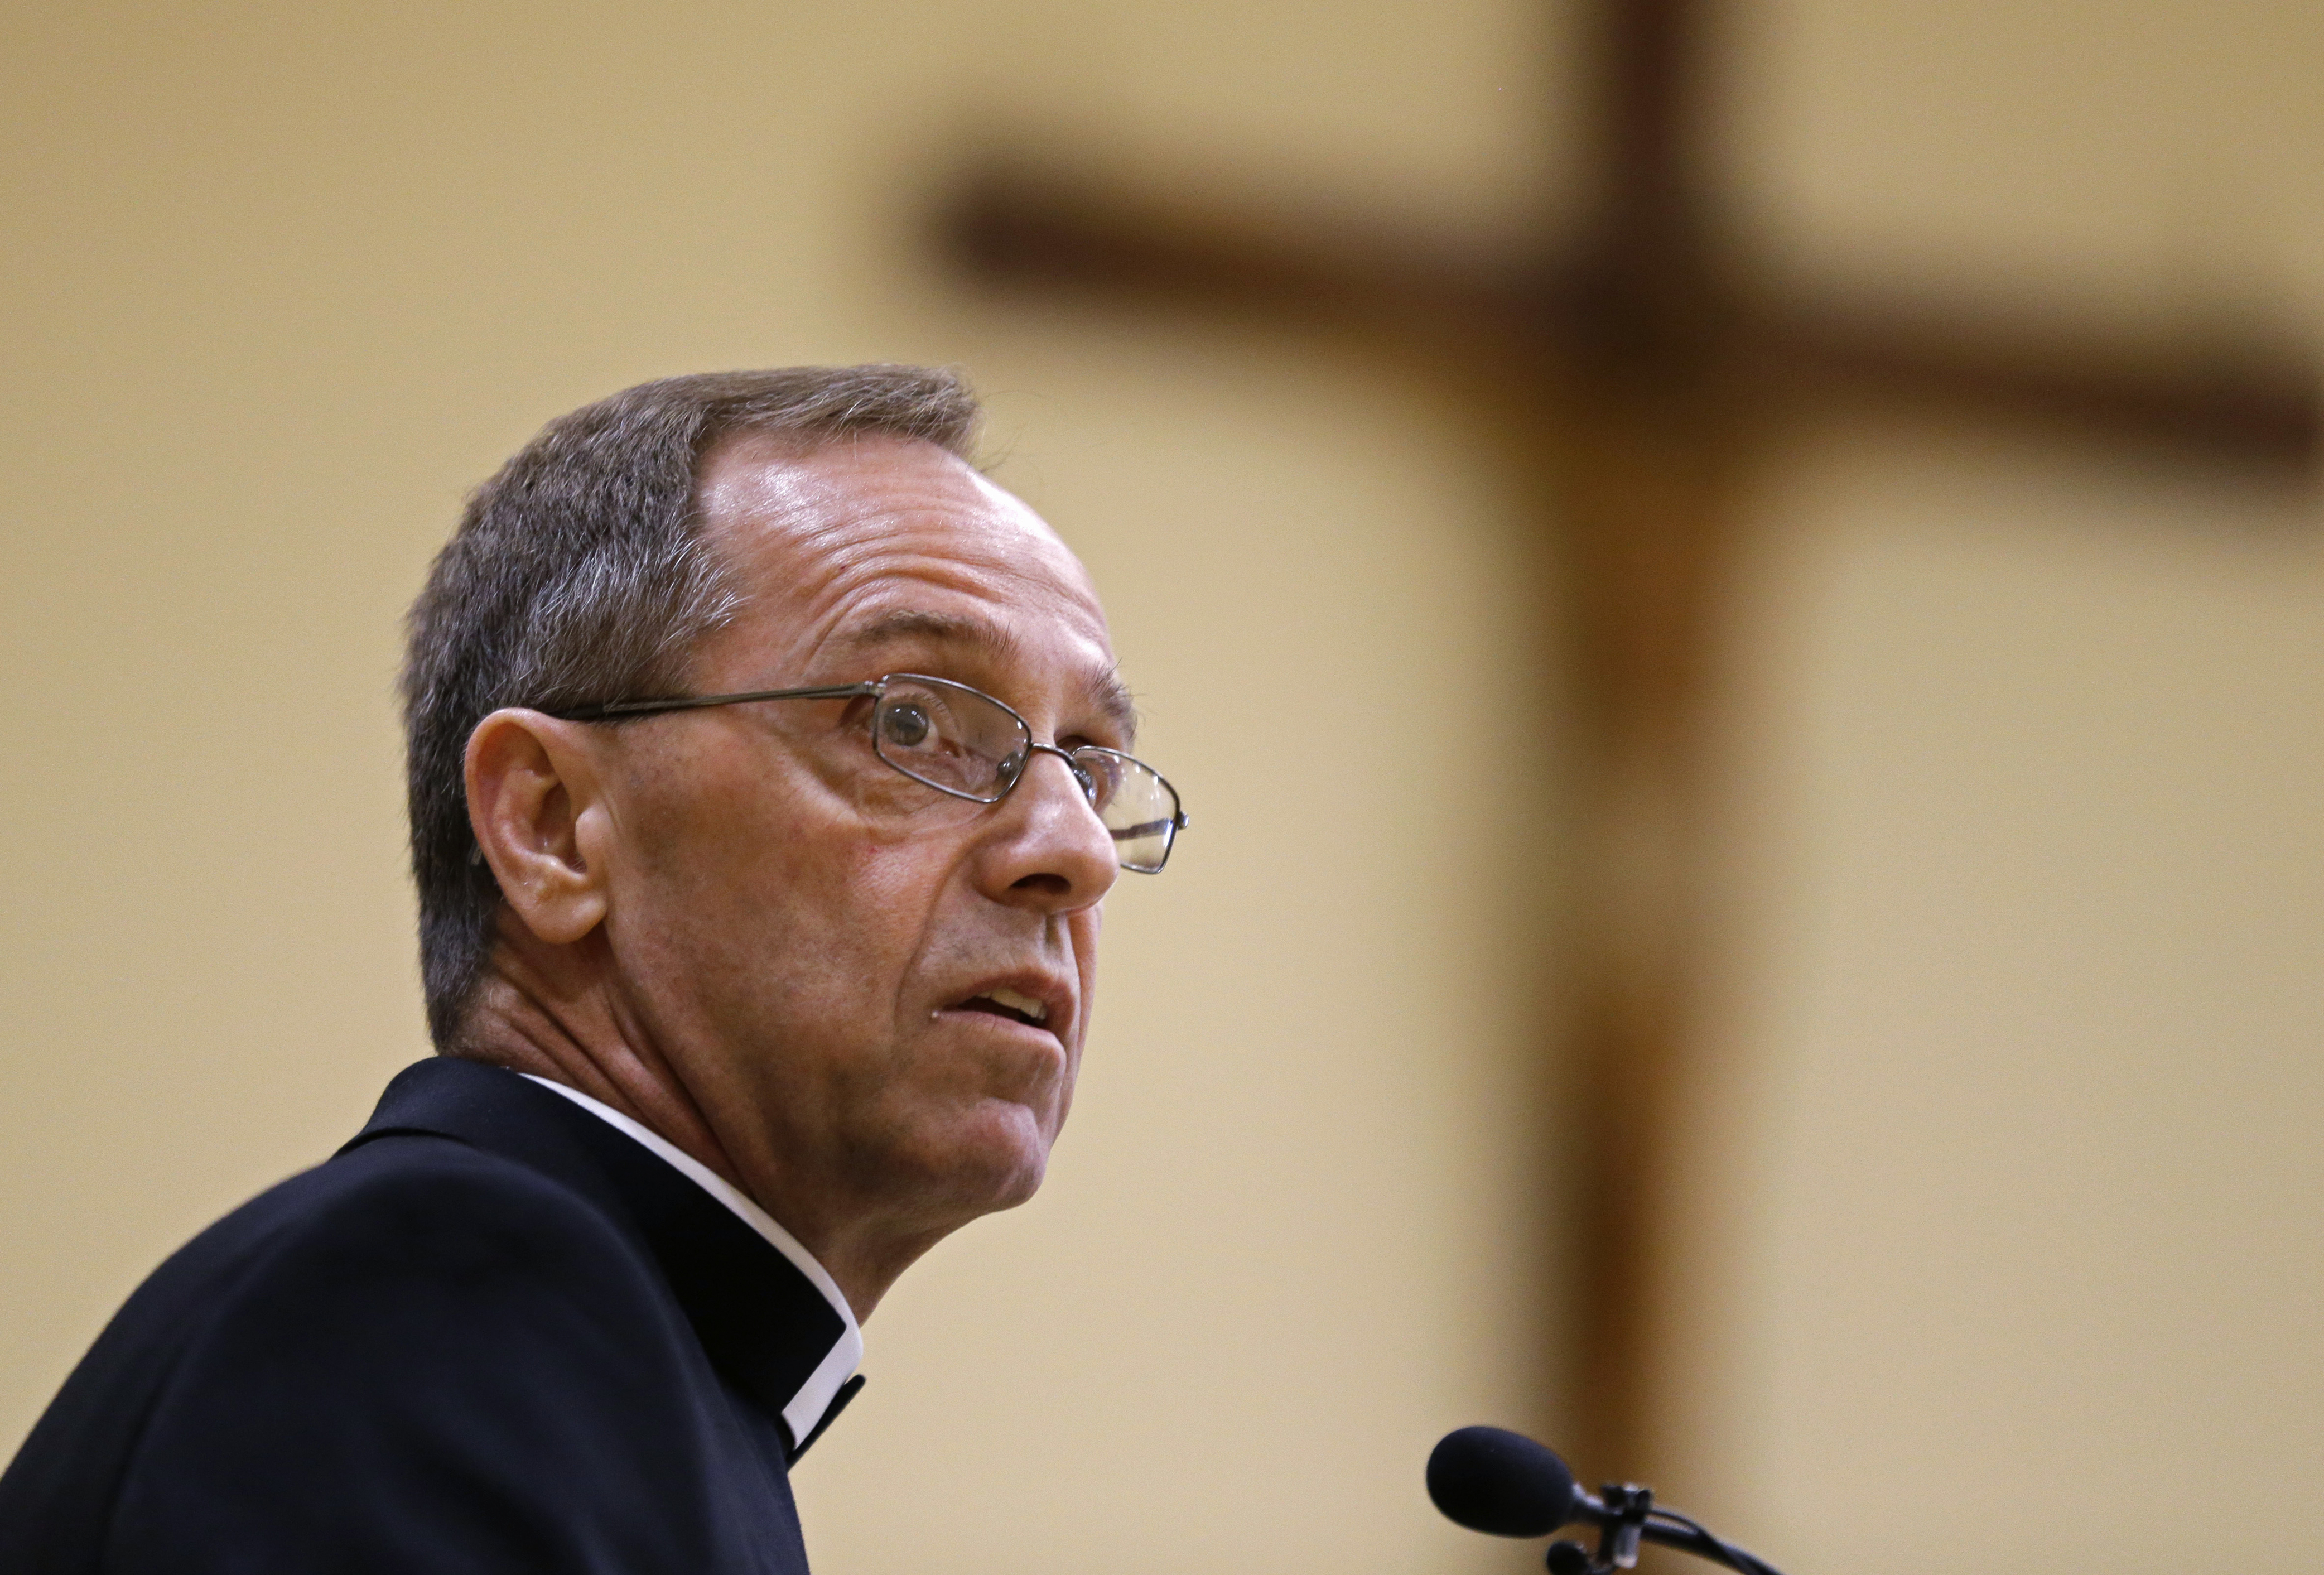 Indiana teacher fired for same-sex marriage sues archdiocese